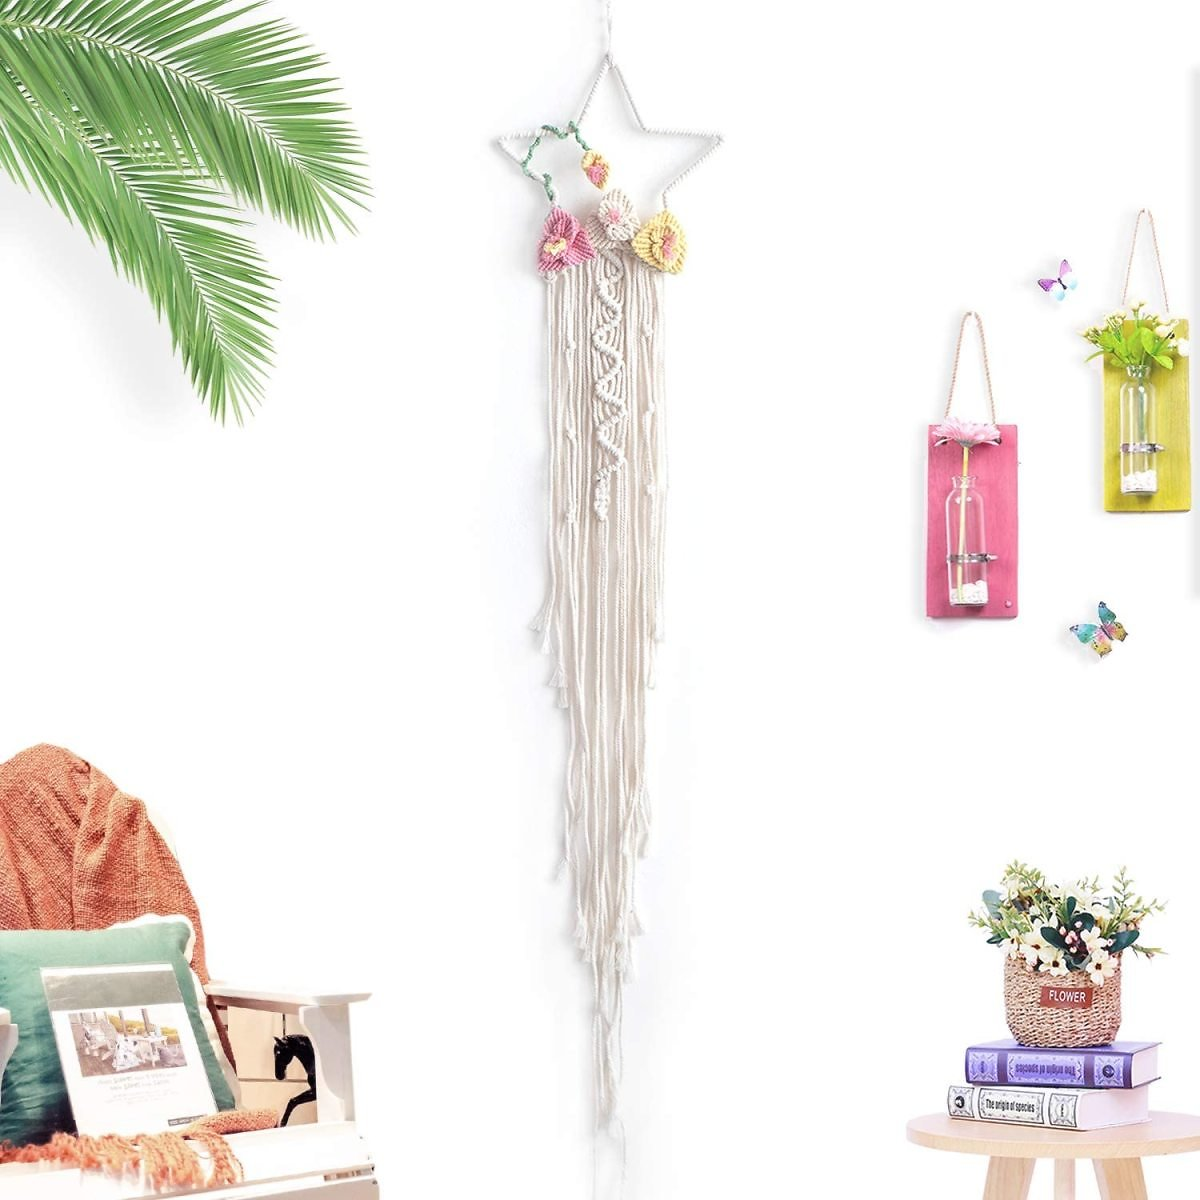 TEESHLY Handmade Woven Cotton Dream Catchers, Boho Macrame Dreamcatchers Wall Hanging Home Decoration Ornament Craft Gift (Beige